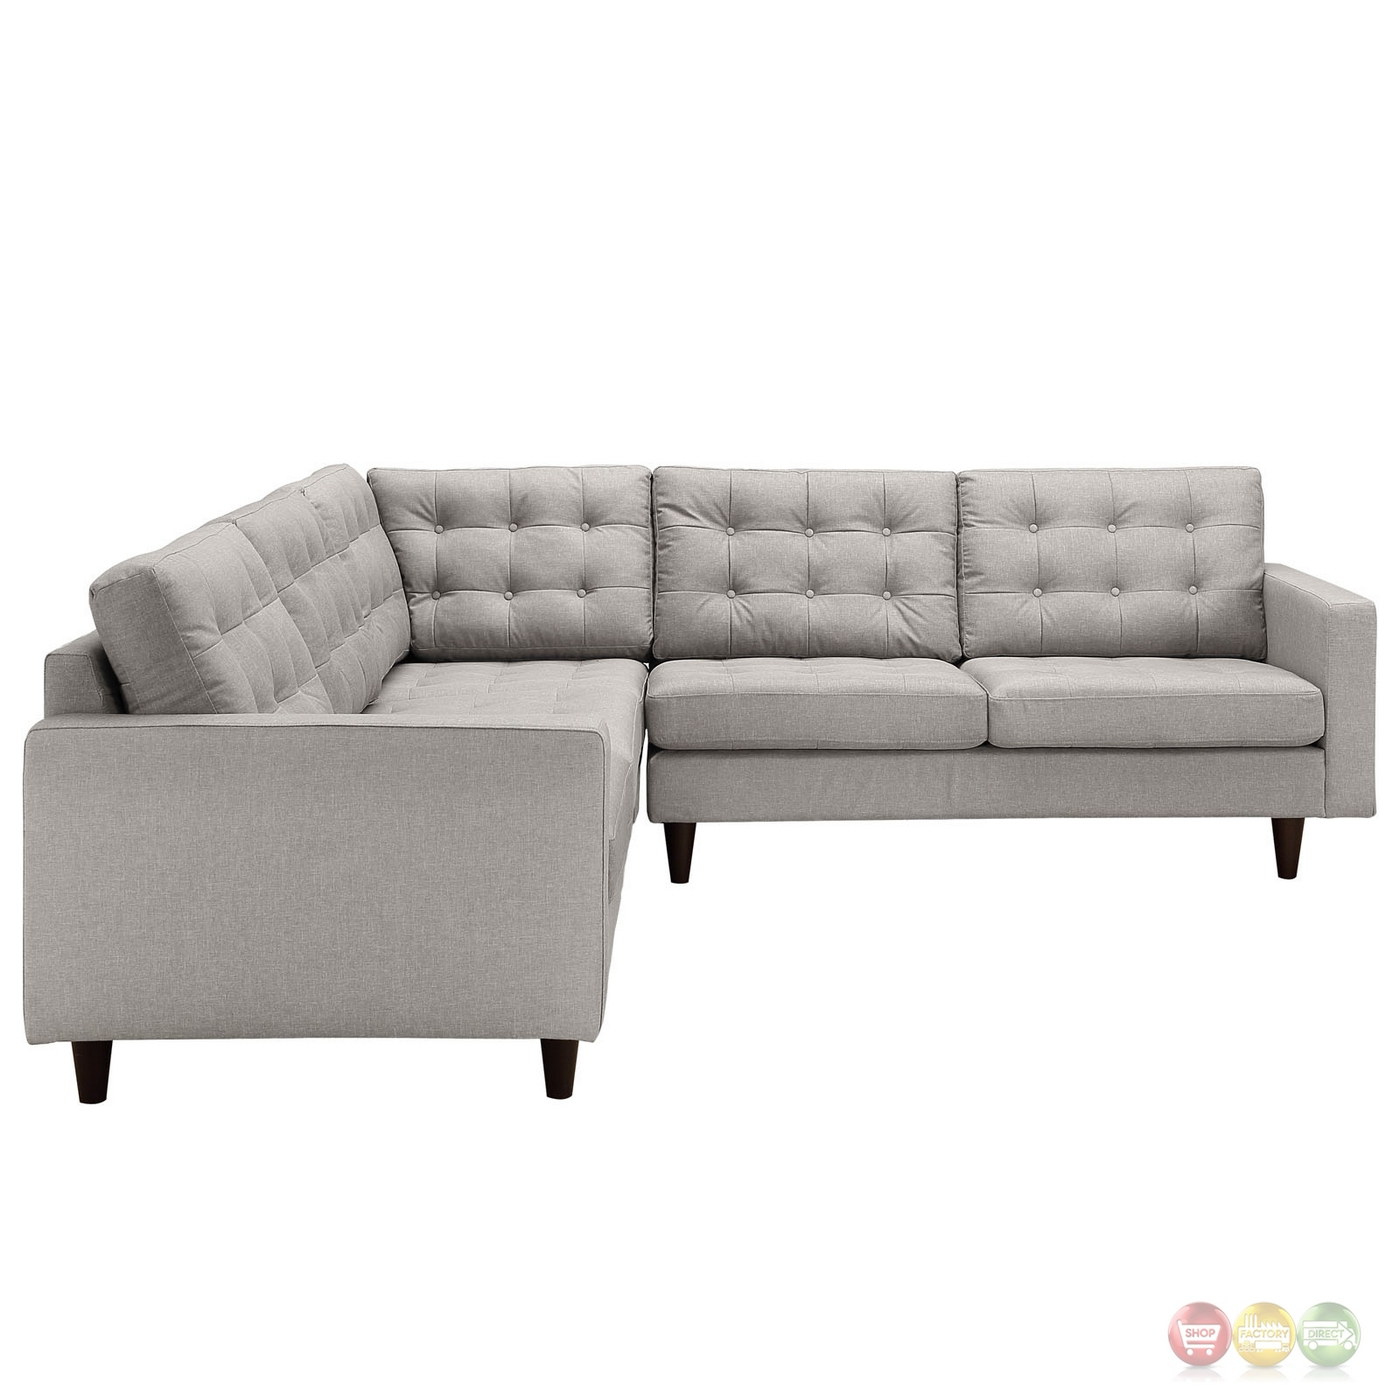 Empress 3 piece button tufted upholstered sectional sofa for Sectional couch